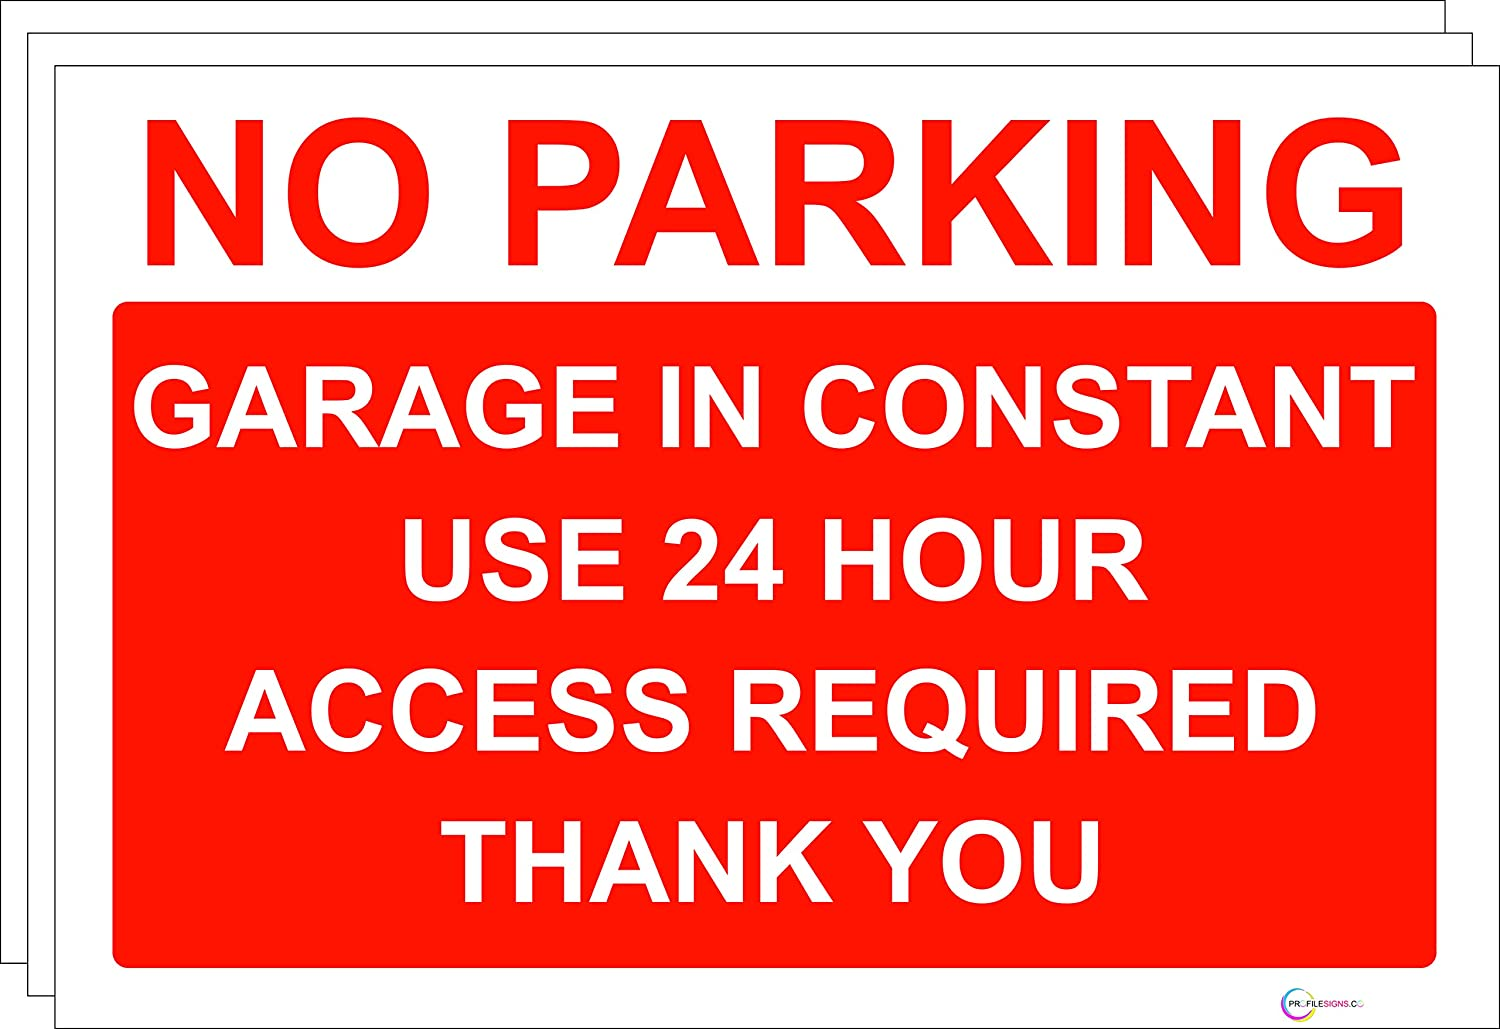 No parking Sign/Signs - Large Choice Rigid PVC Or Self Adhesive Sticker - Quality Screen Print (1, Rigid PVC NO PARKING 24 Hour Access Required) PROFILESIGNS.CO